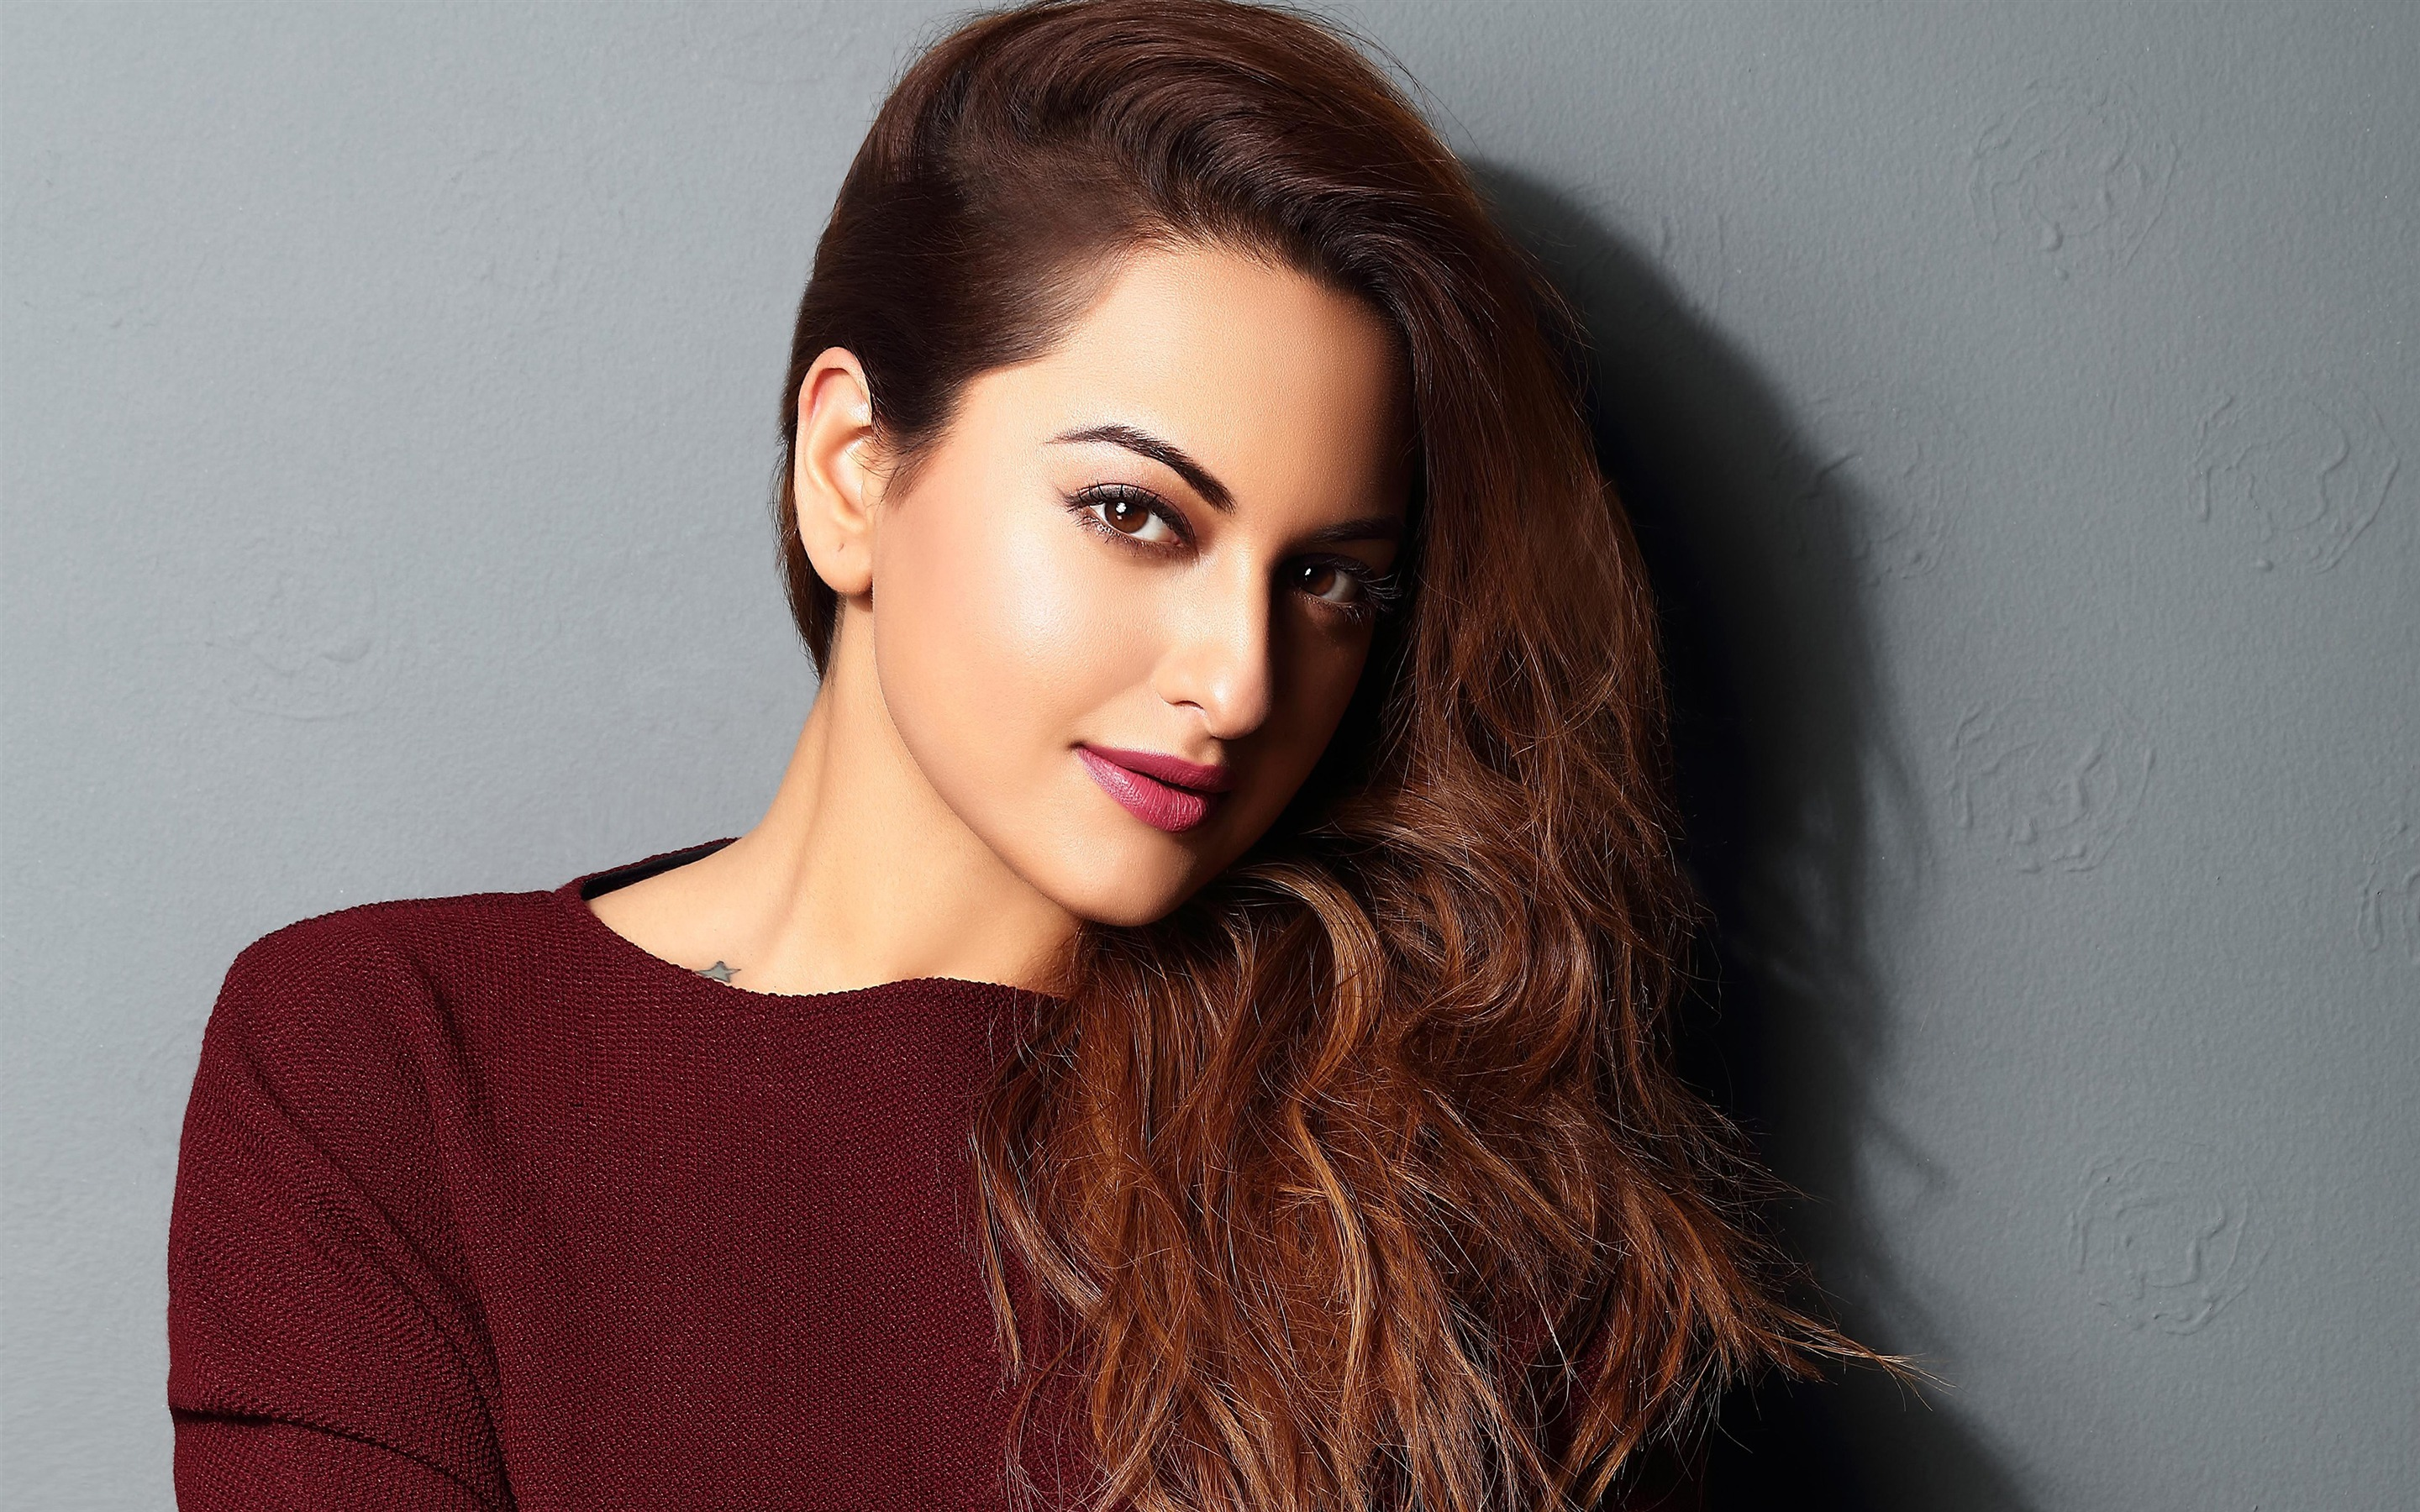 2018 Sonakshi Sinha Indian Actor HD Photo - 2880x1800 wallpaper download